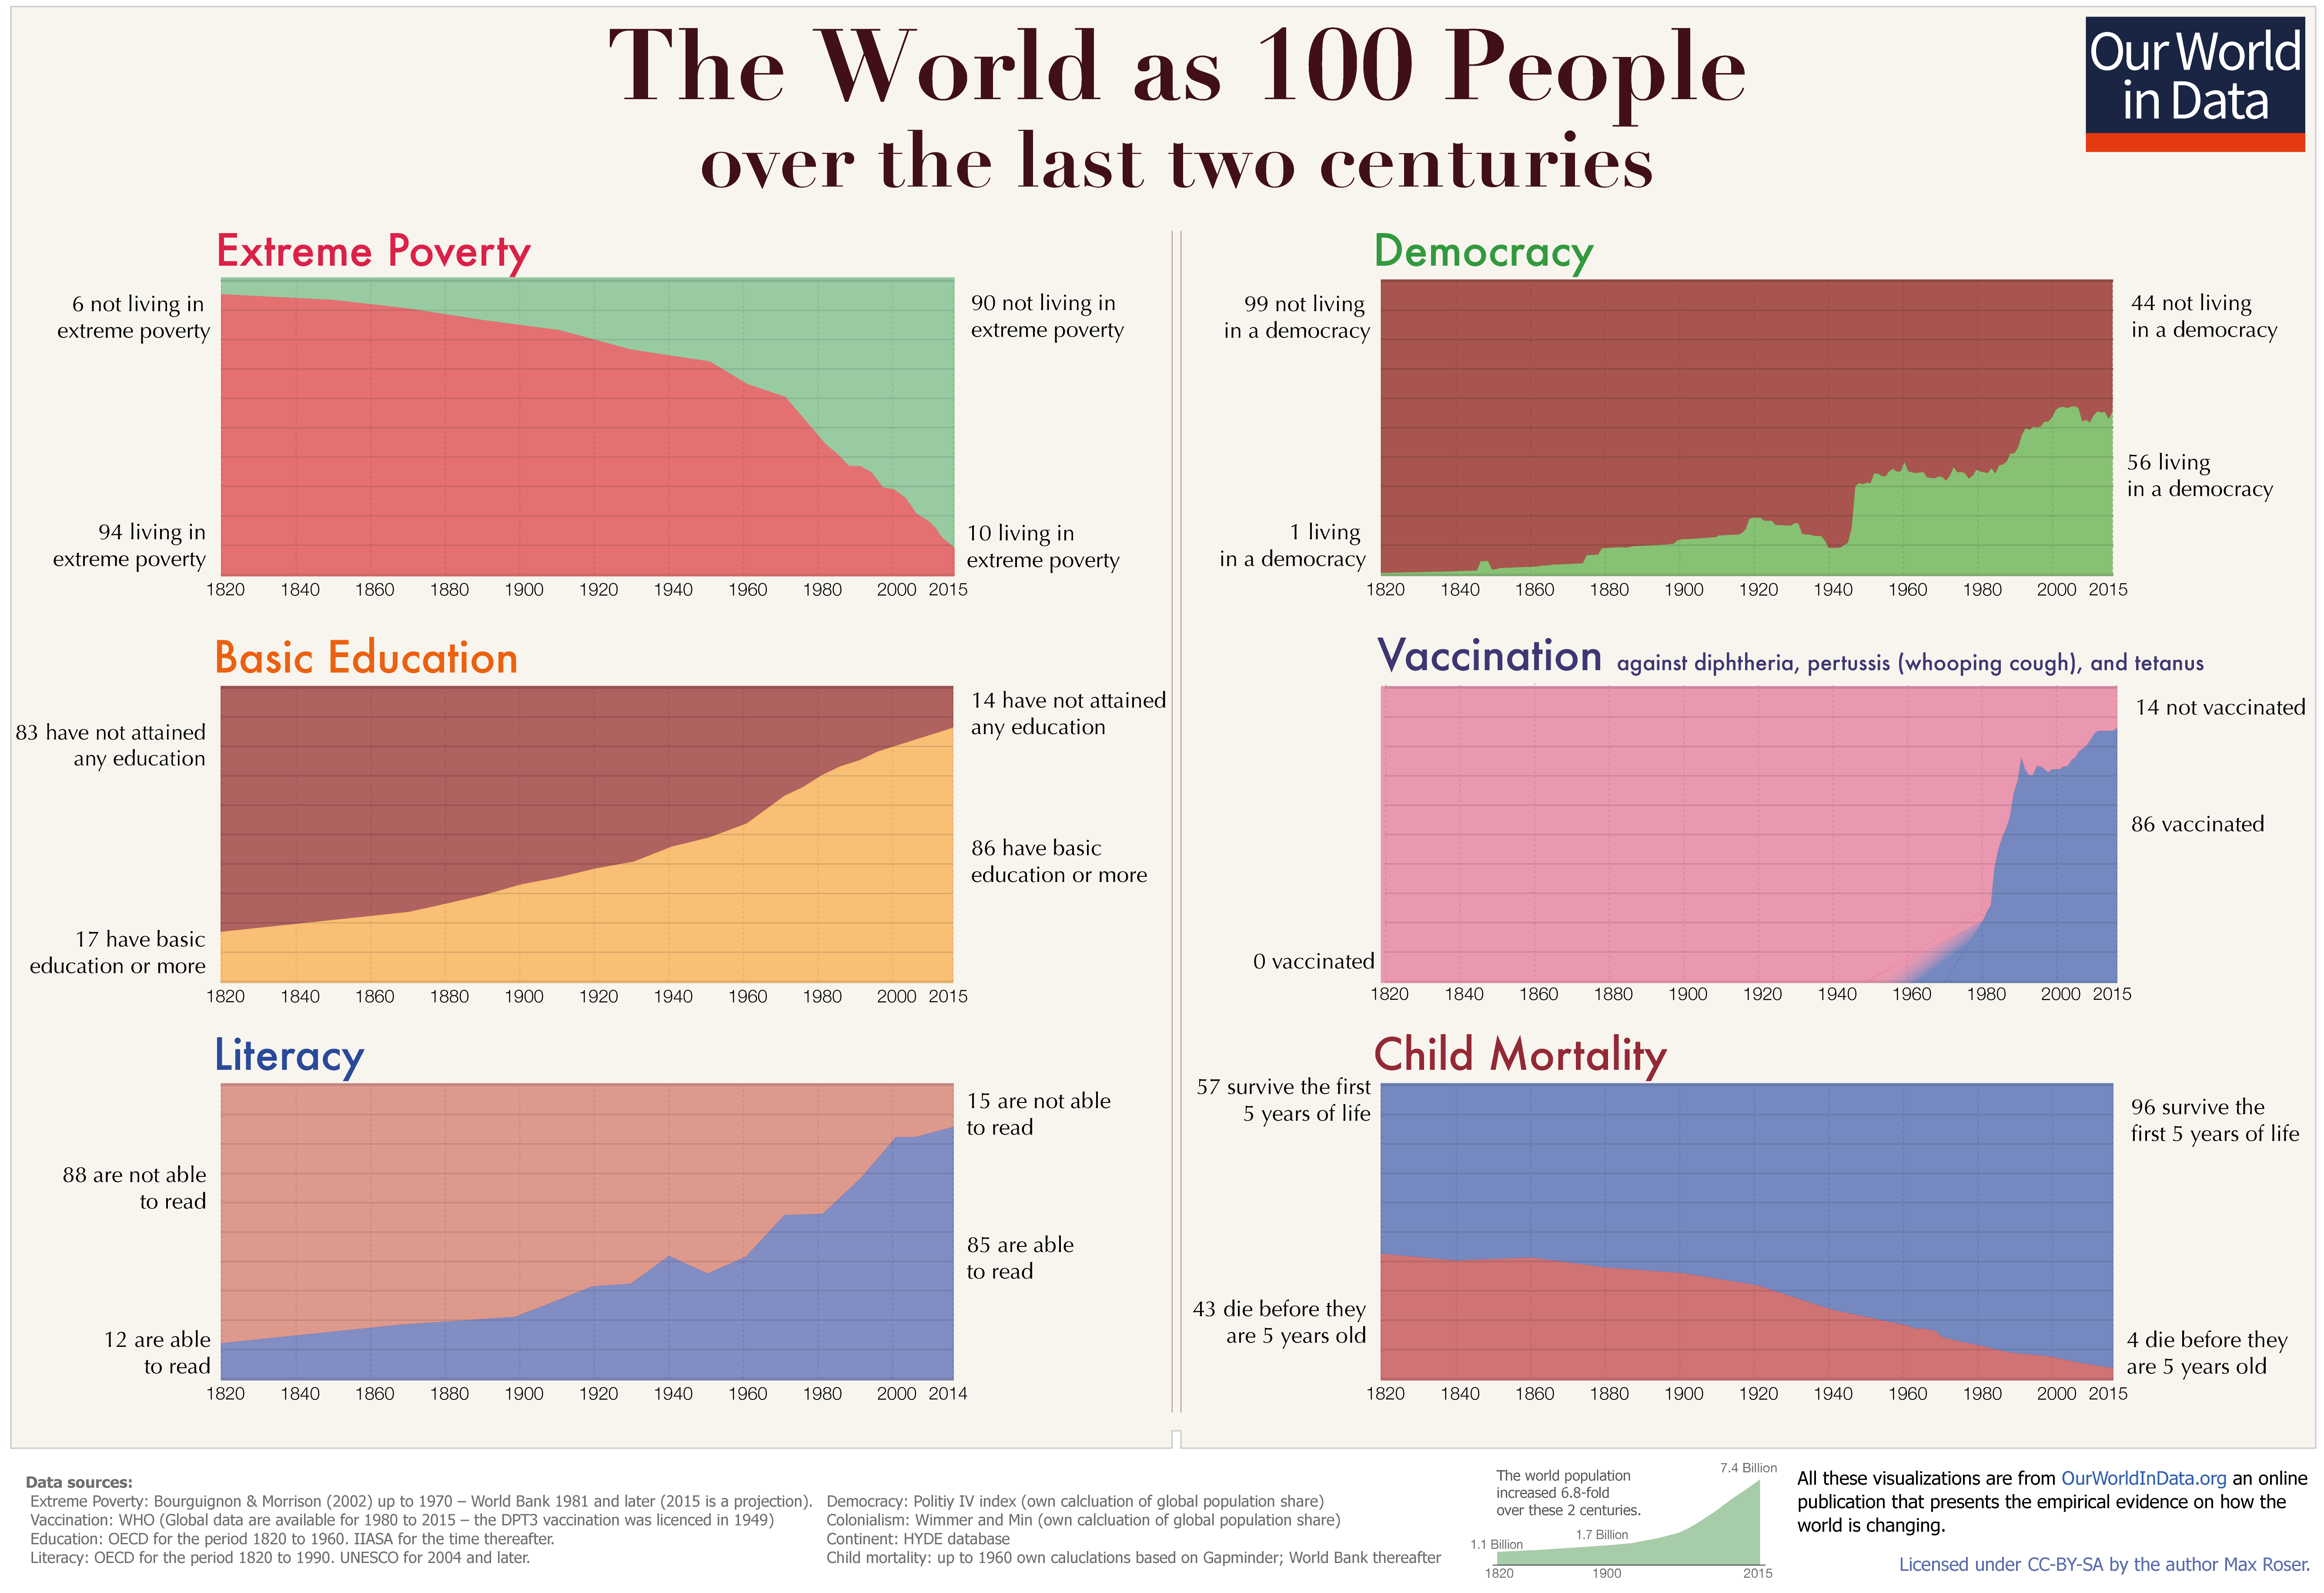 Png Of Two People Falling Opposite Directions - The short history of global living conditions and why it matters ...